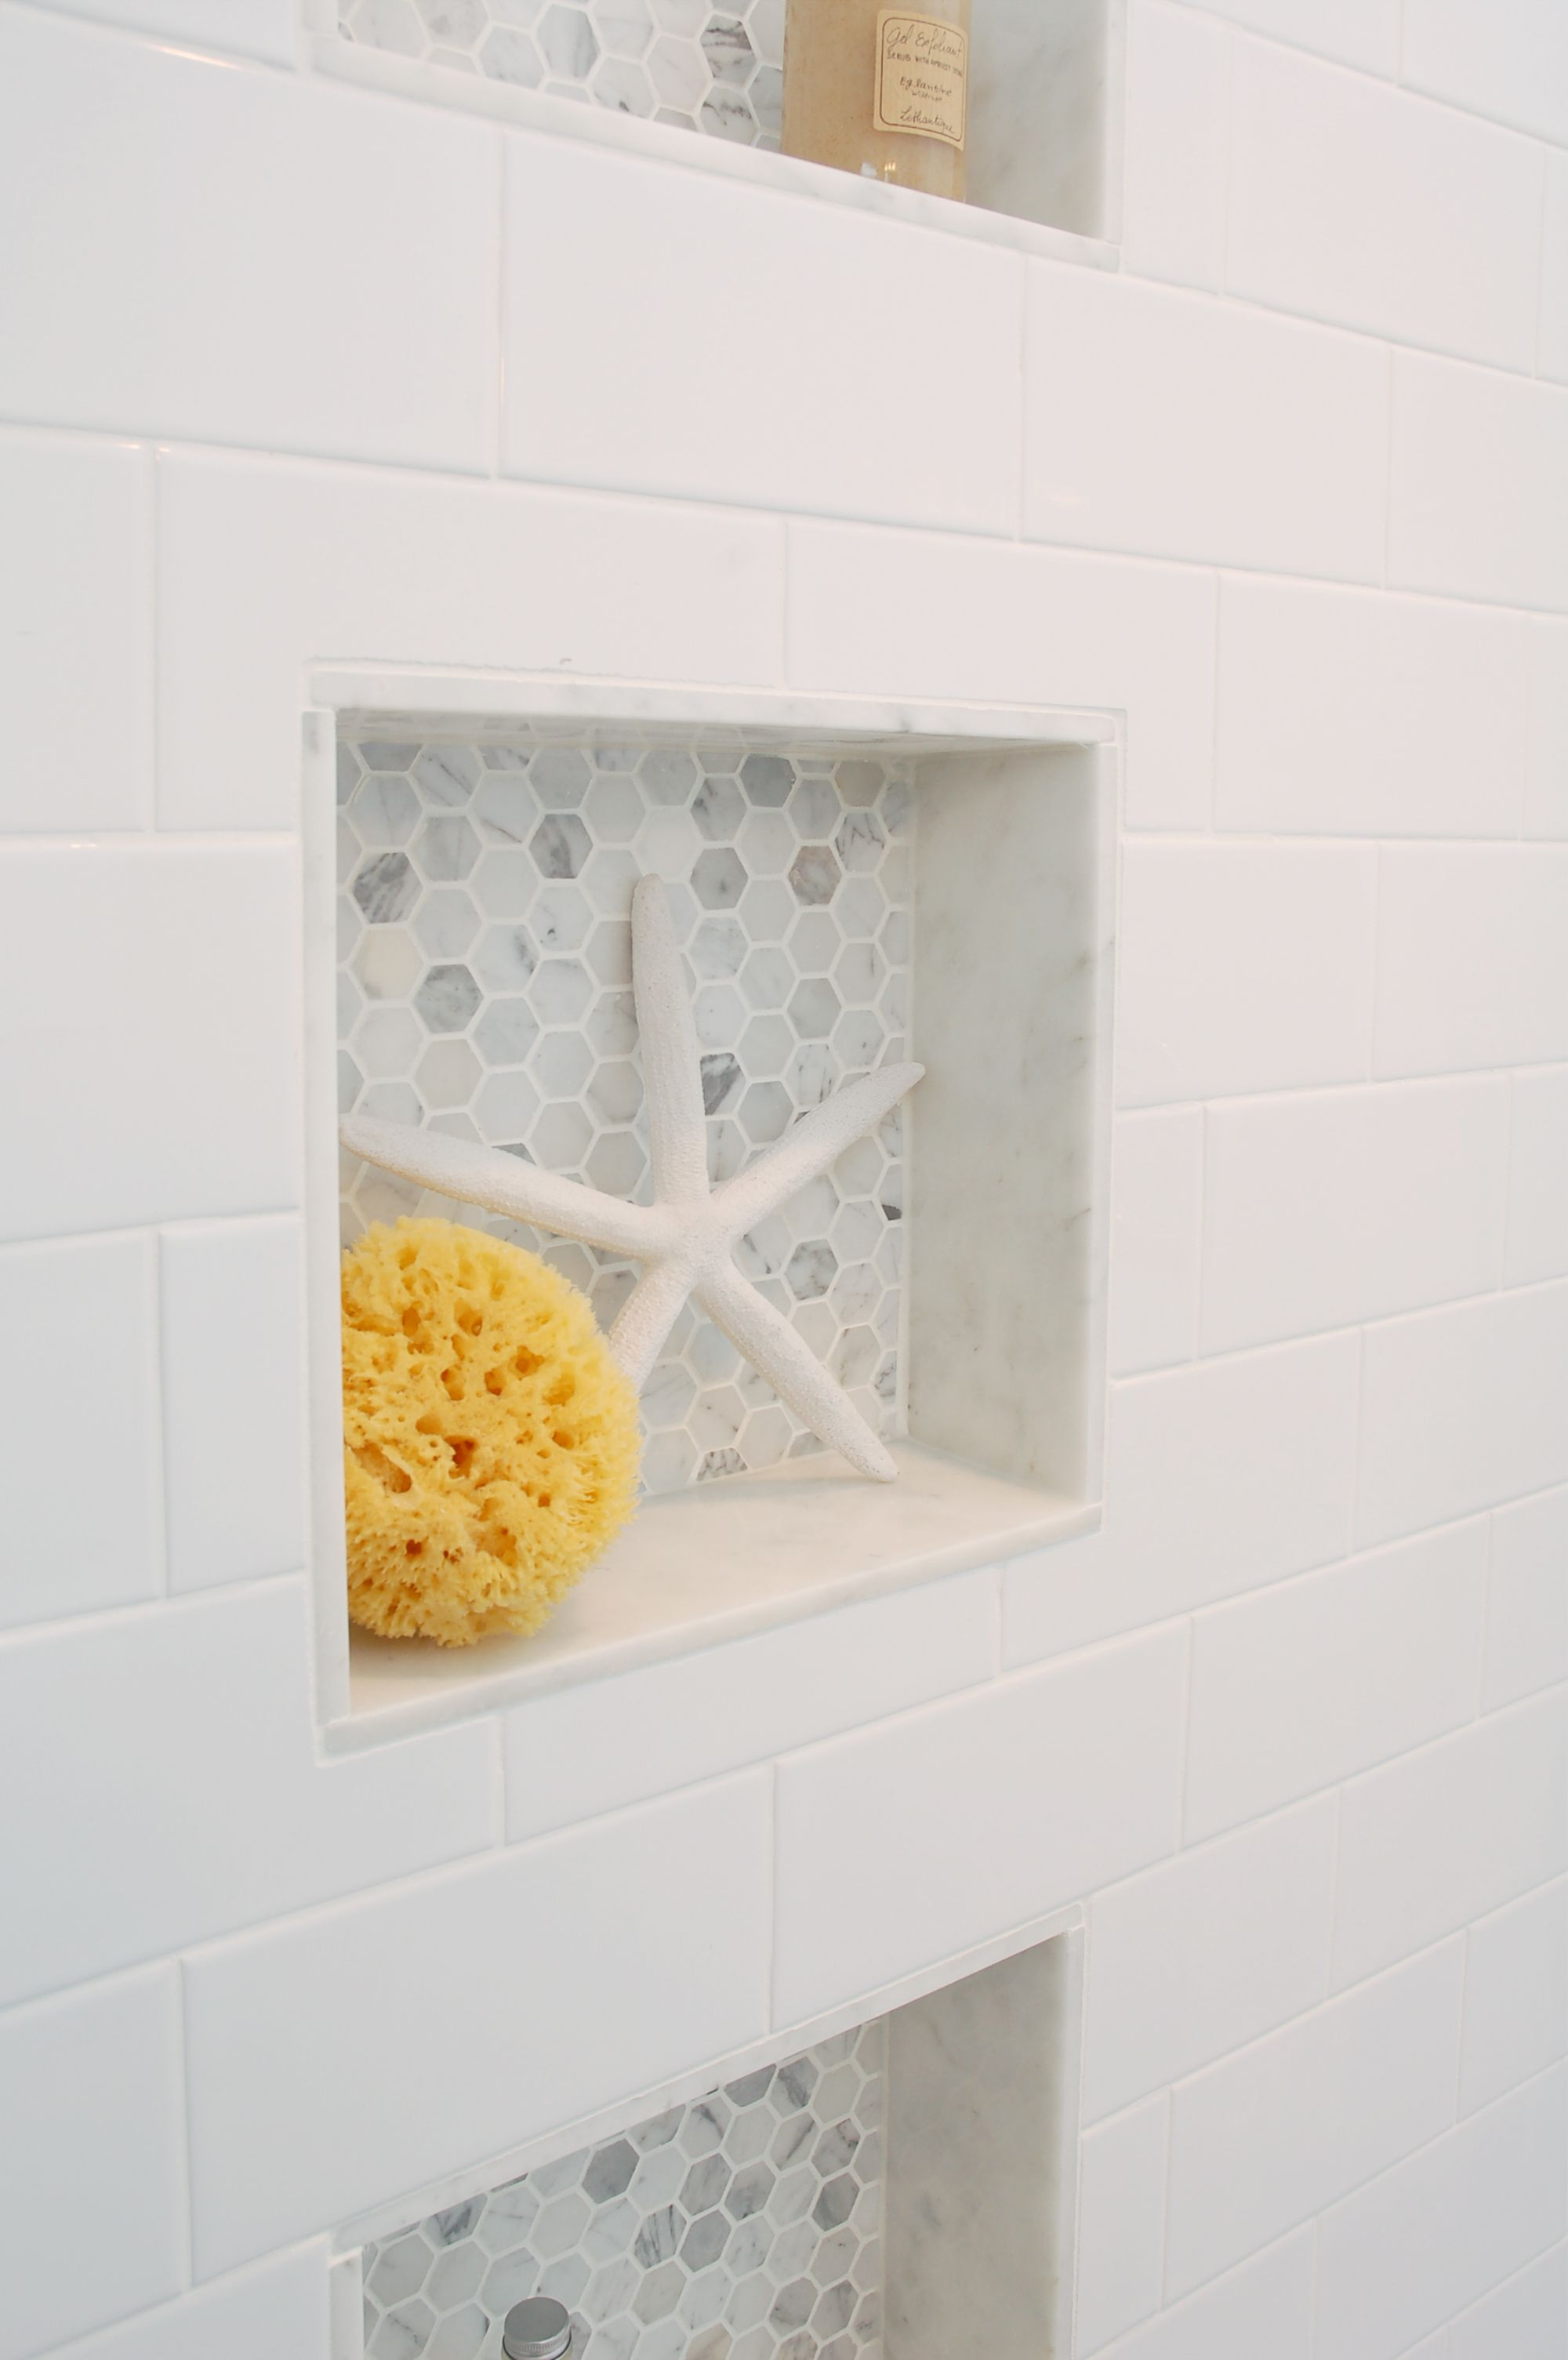 Recessed shower shelving shelves ledge niche hex tile 1 hexagon tile carrera marble Marble hex tile bathroom floor